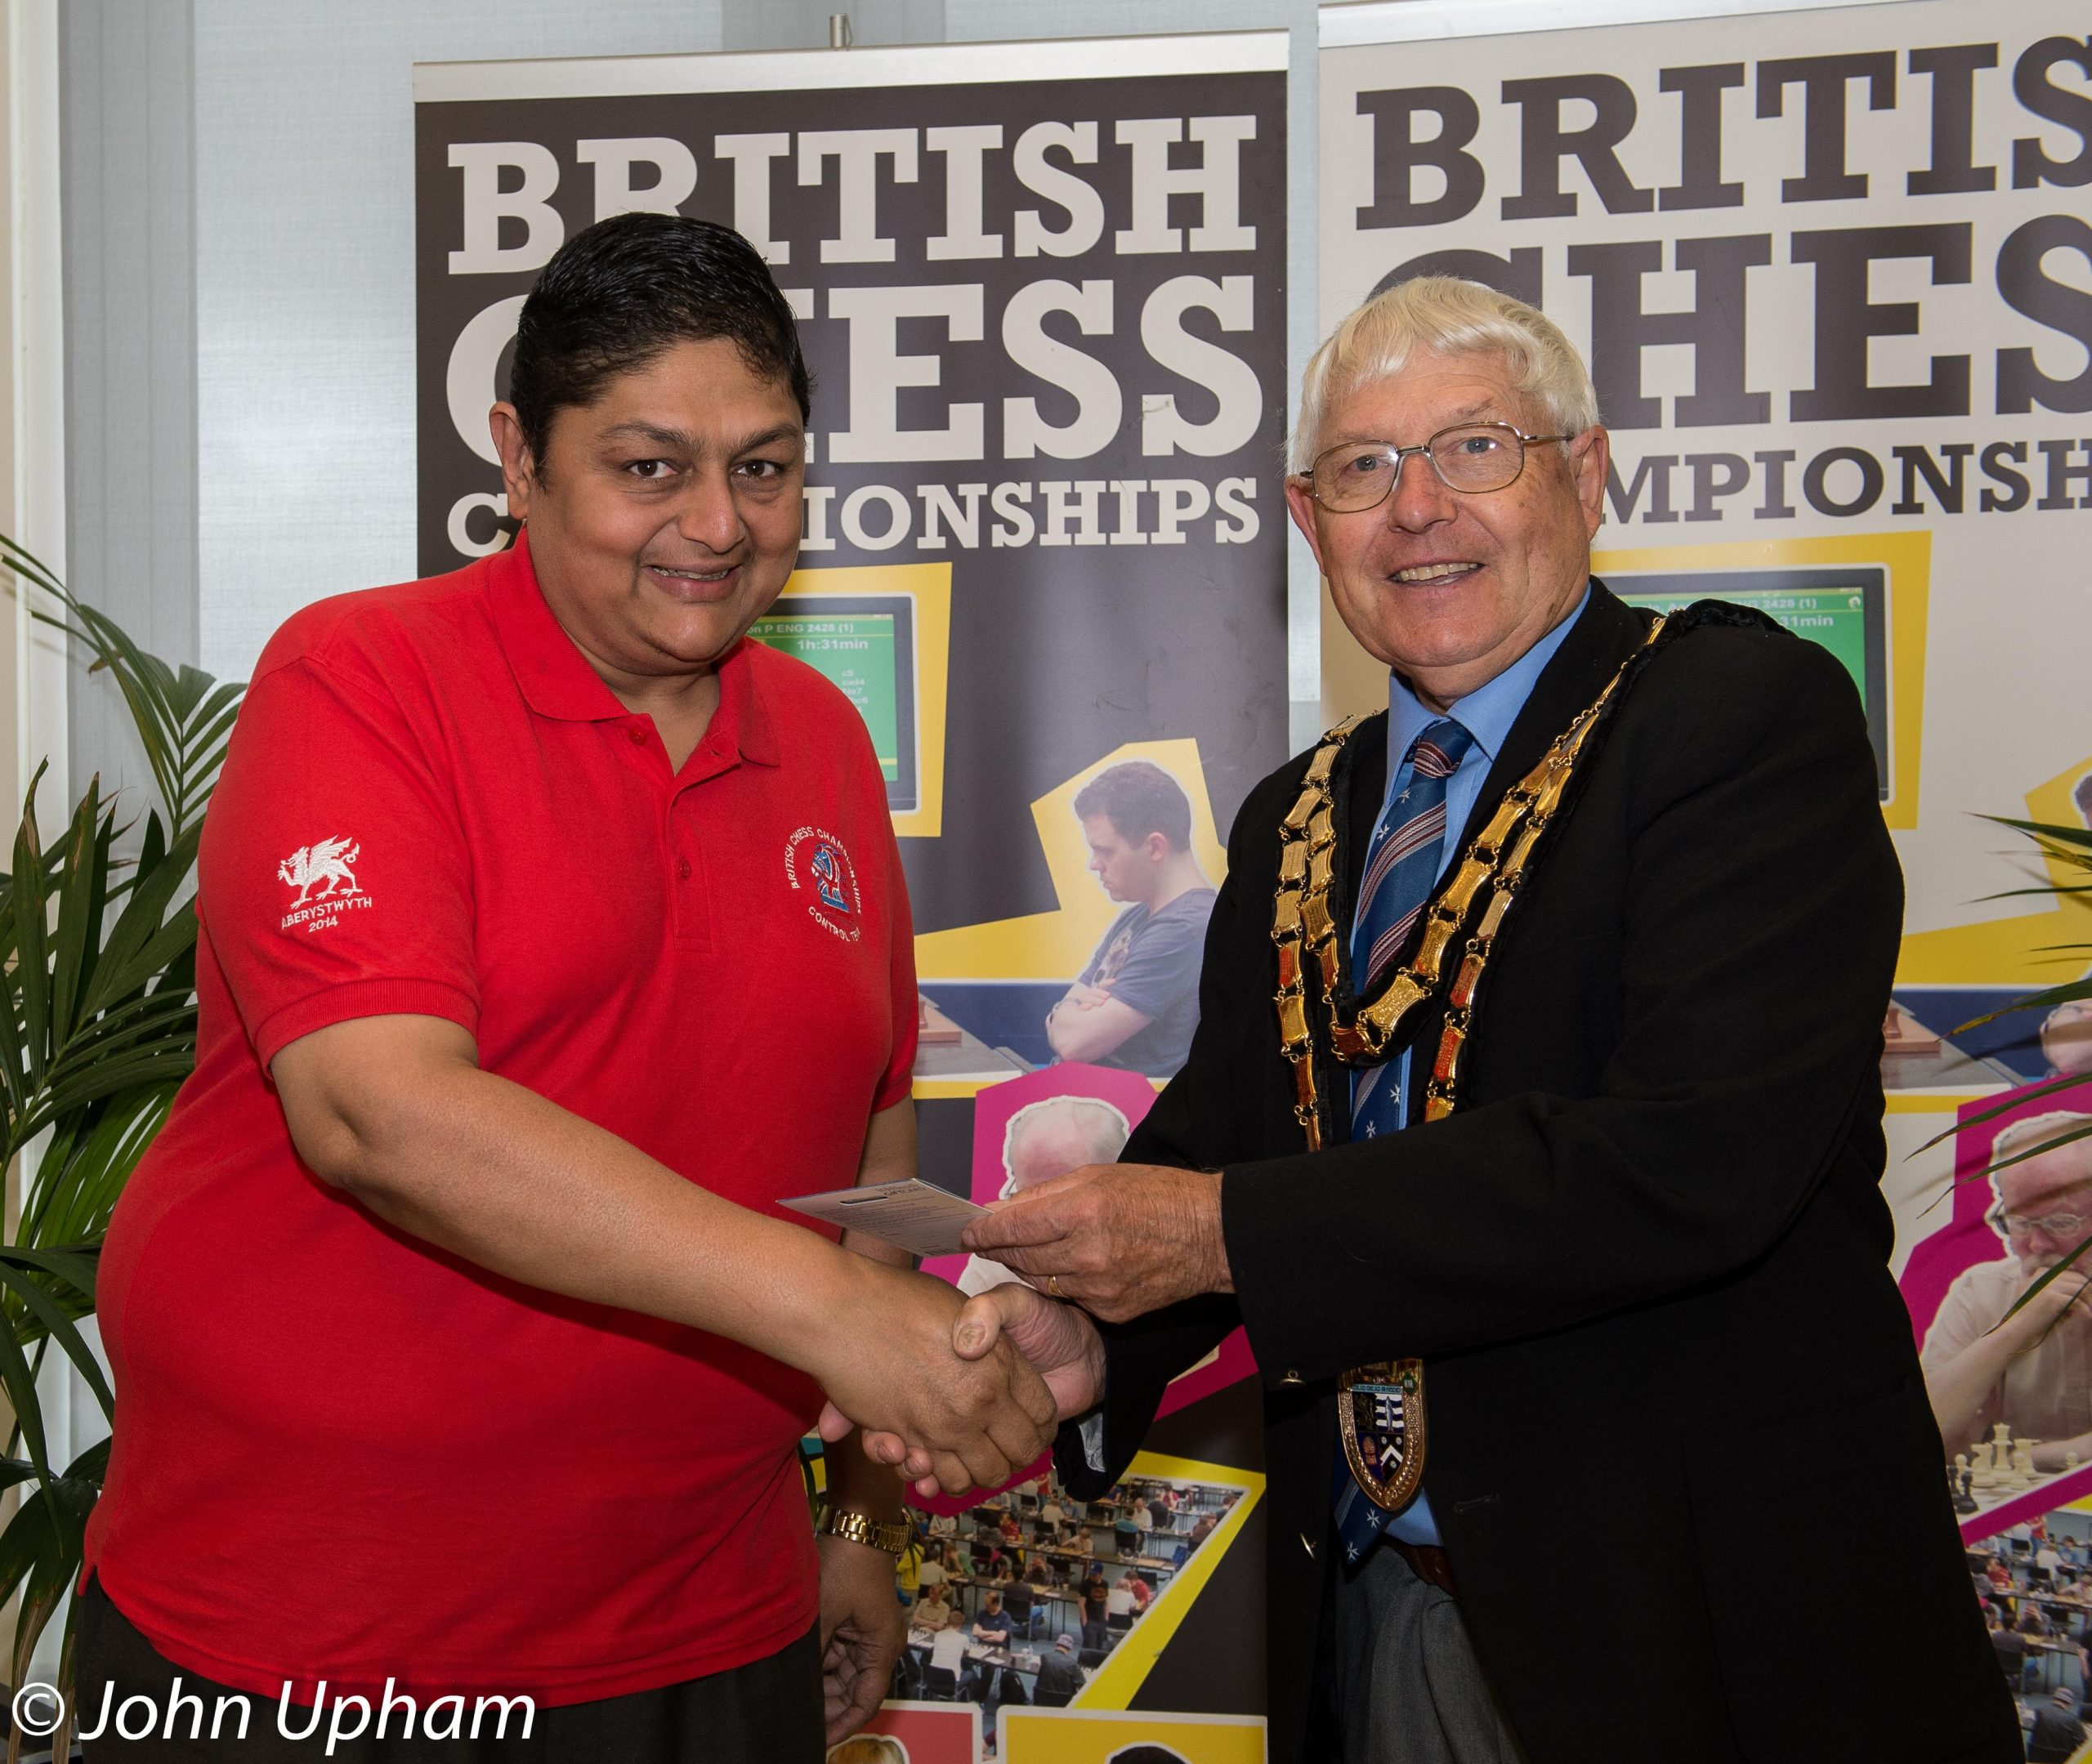 Ravi at the closing ceremony of the 2014 British Championships at Aberystwyth. Courtesy of John Upham Photography